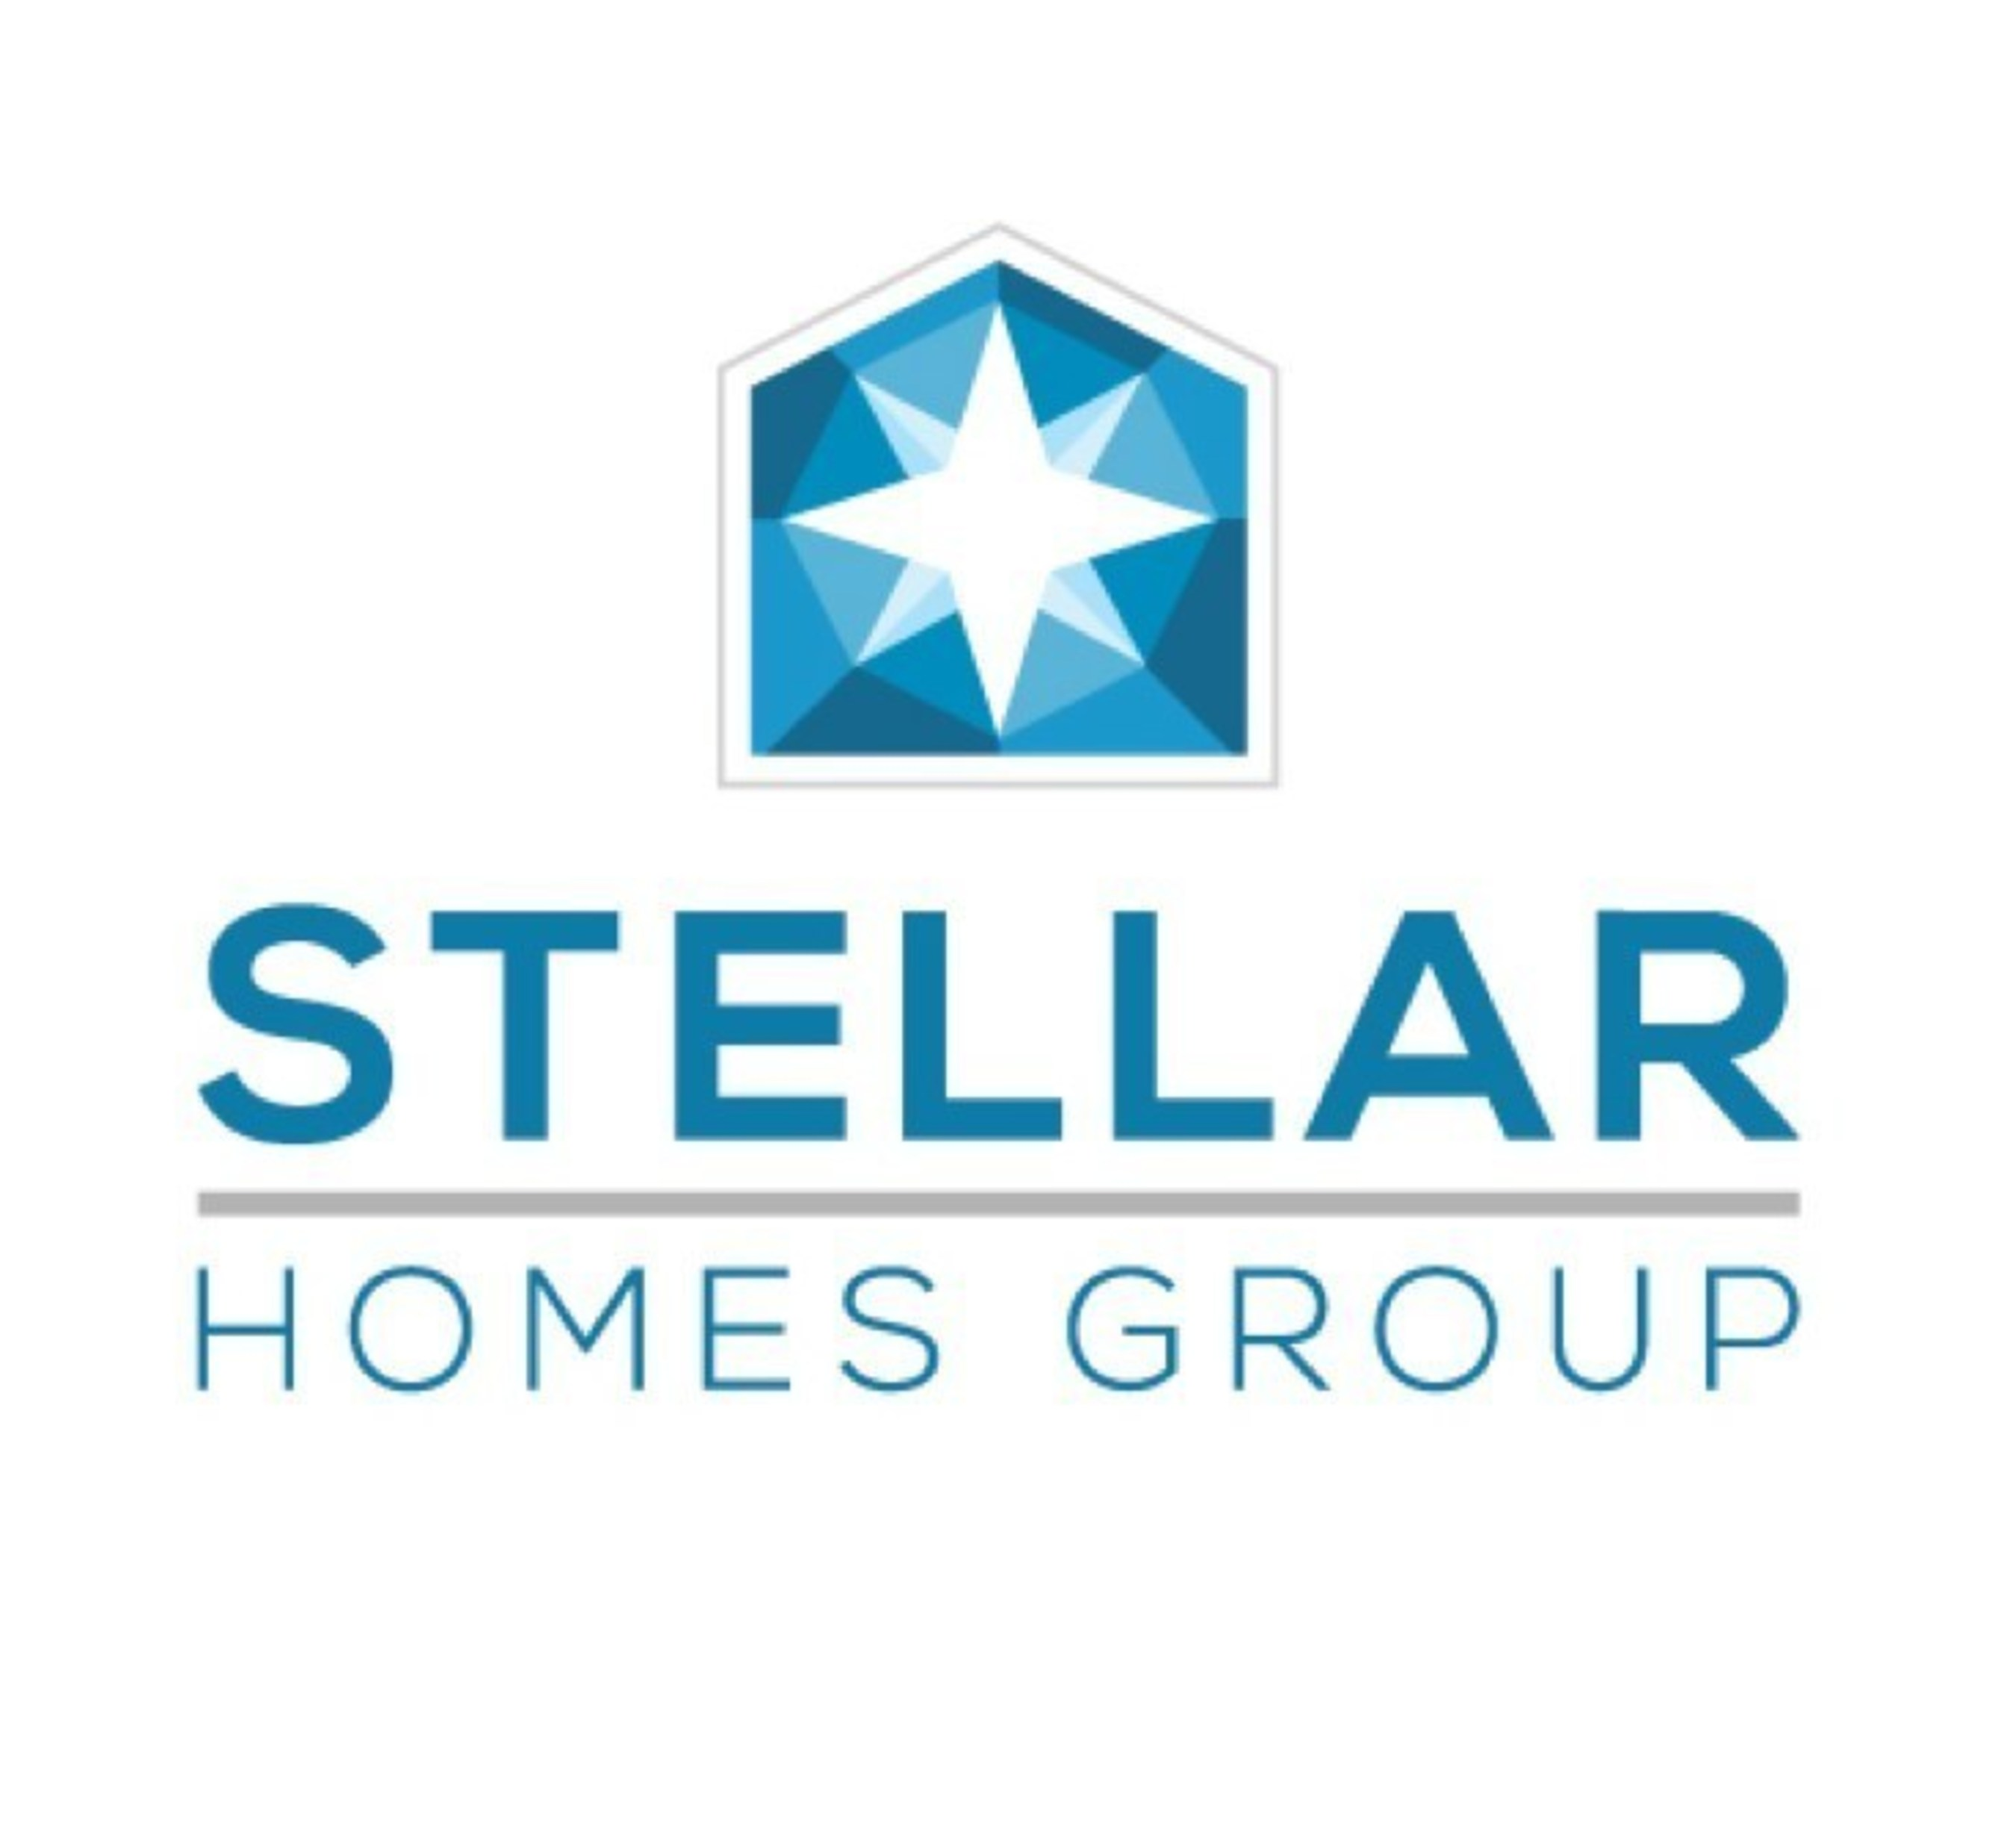 South Florida Real Estate Developer Stellar Homes Group Announces Newest Luxury Ft. Lauderdale Townhome Community